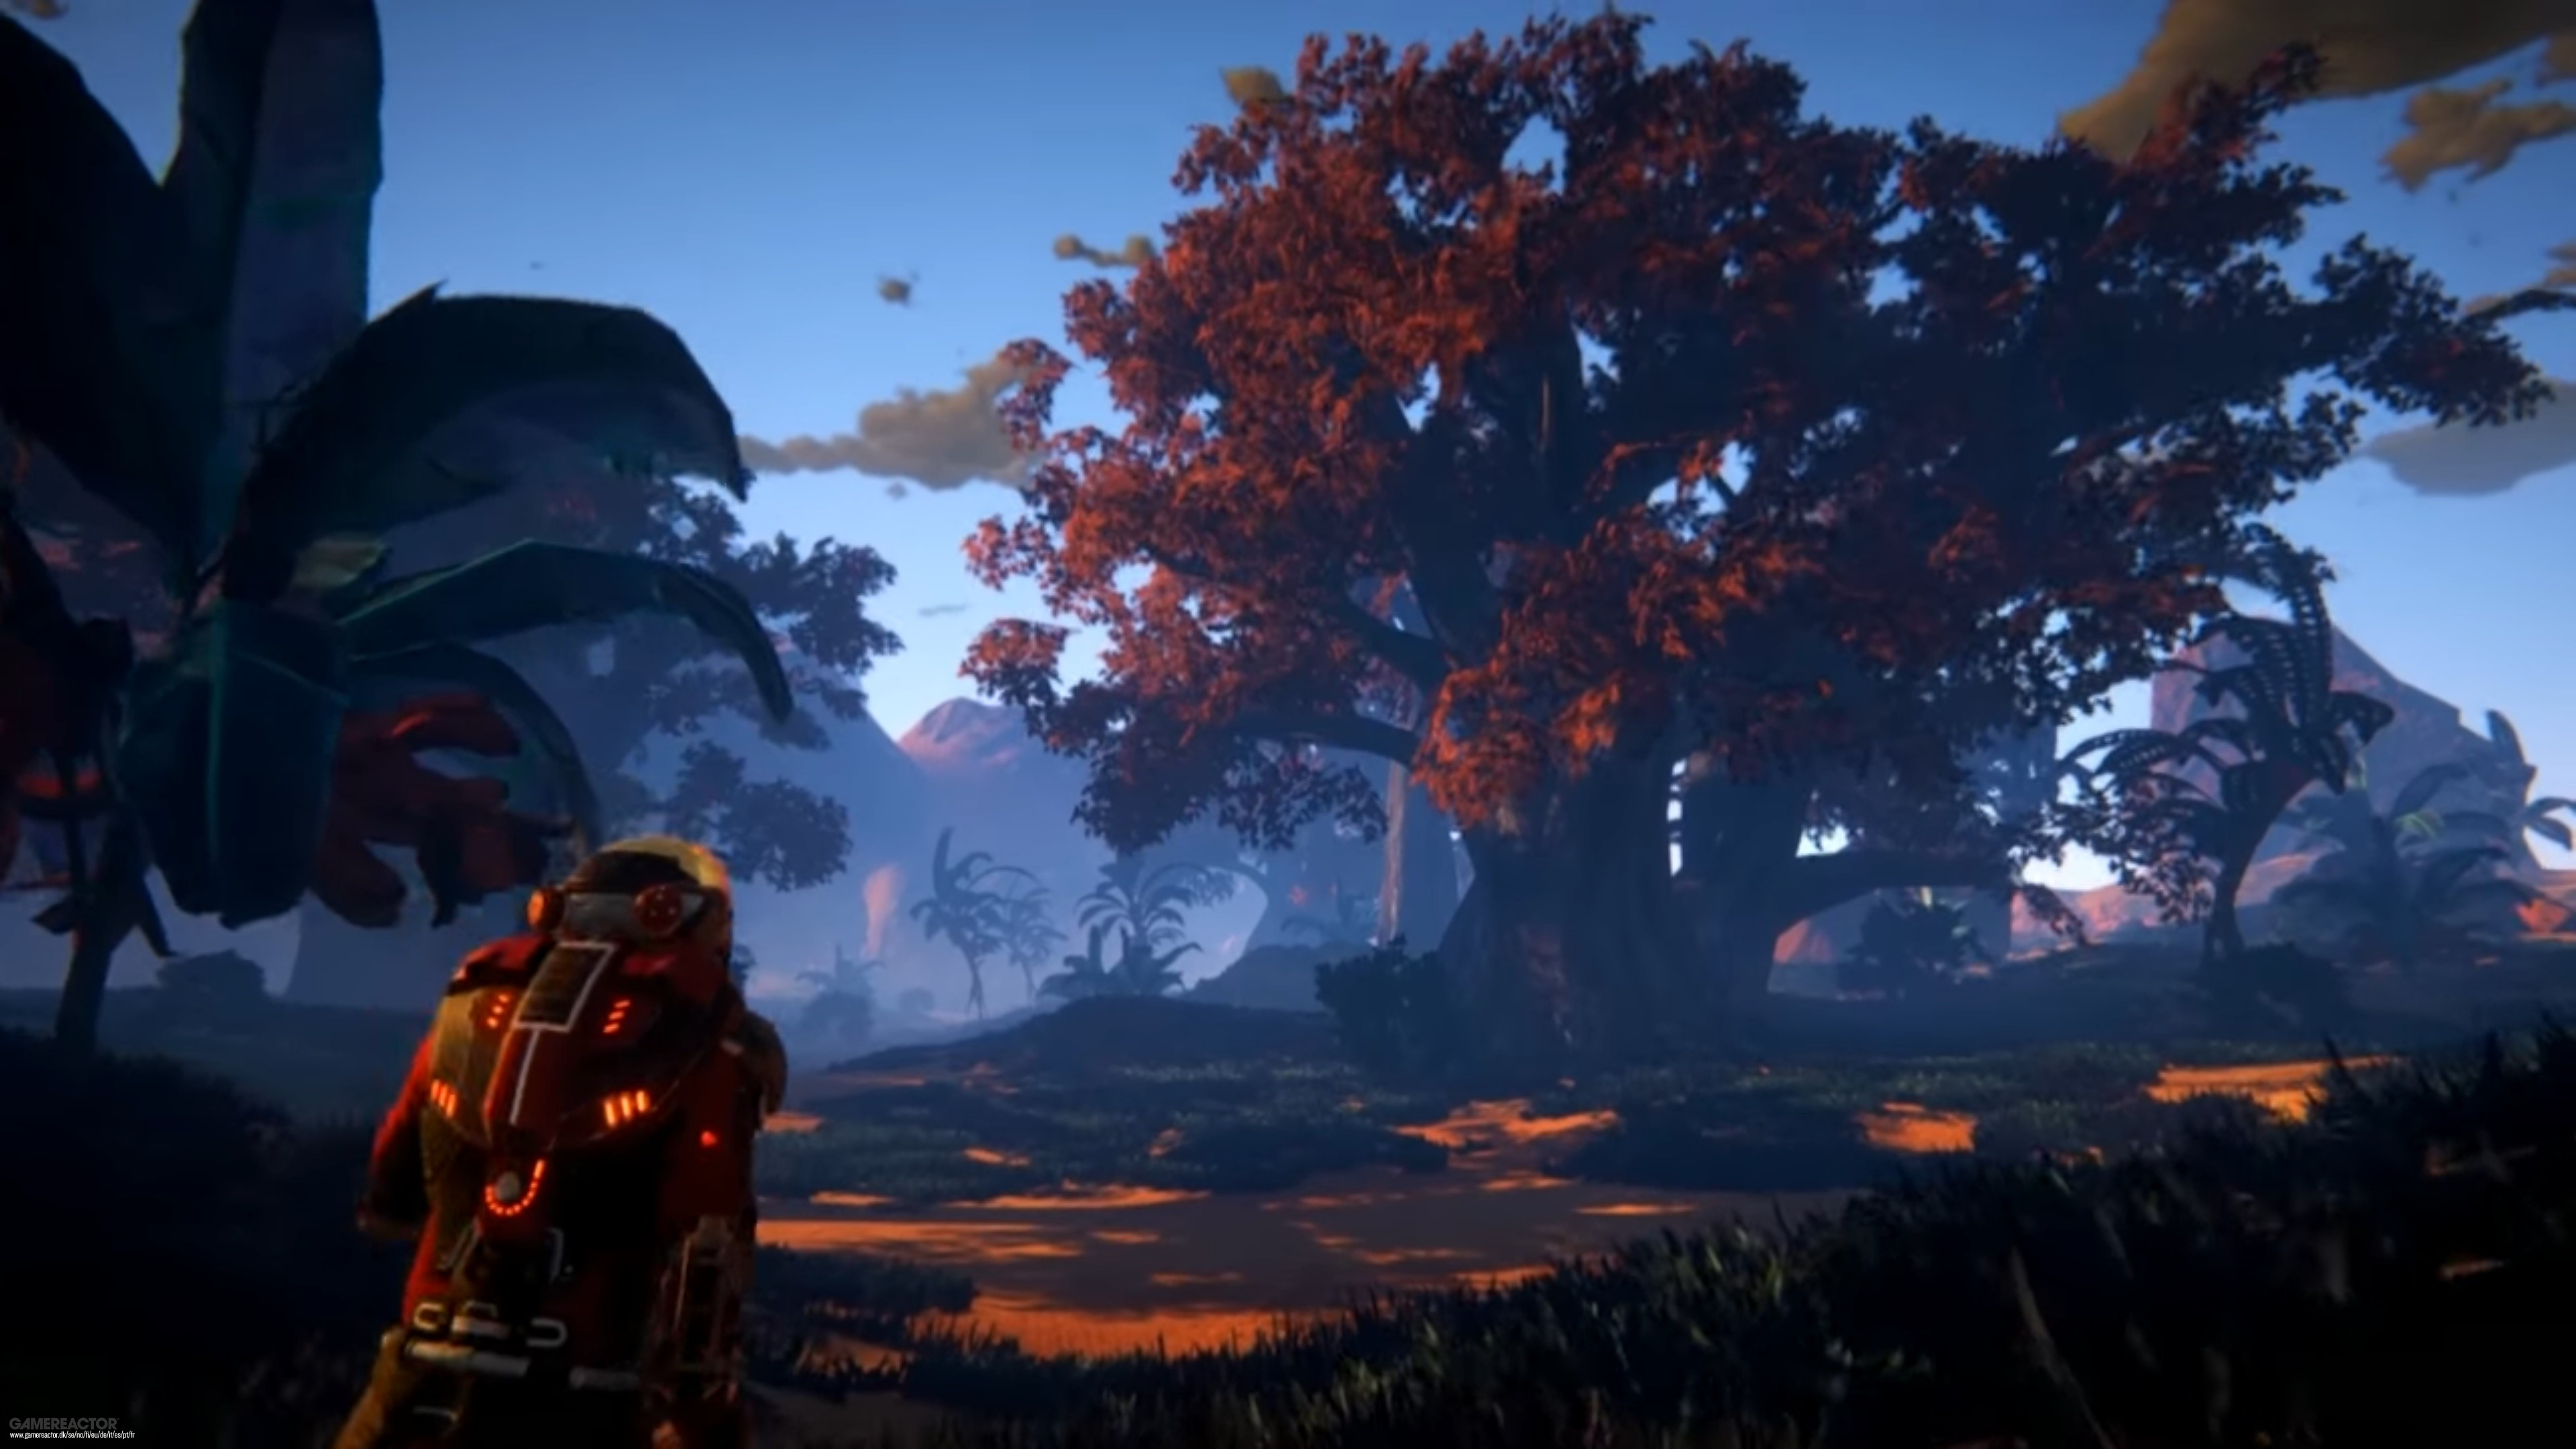 pictures of osiris new dawn updates proteus ii map 1 1